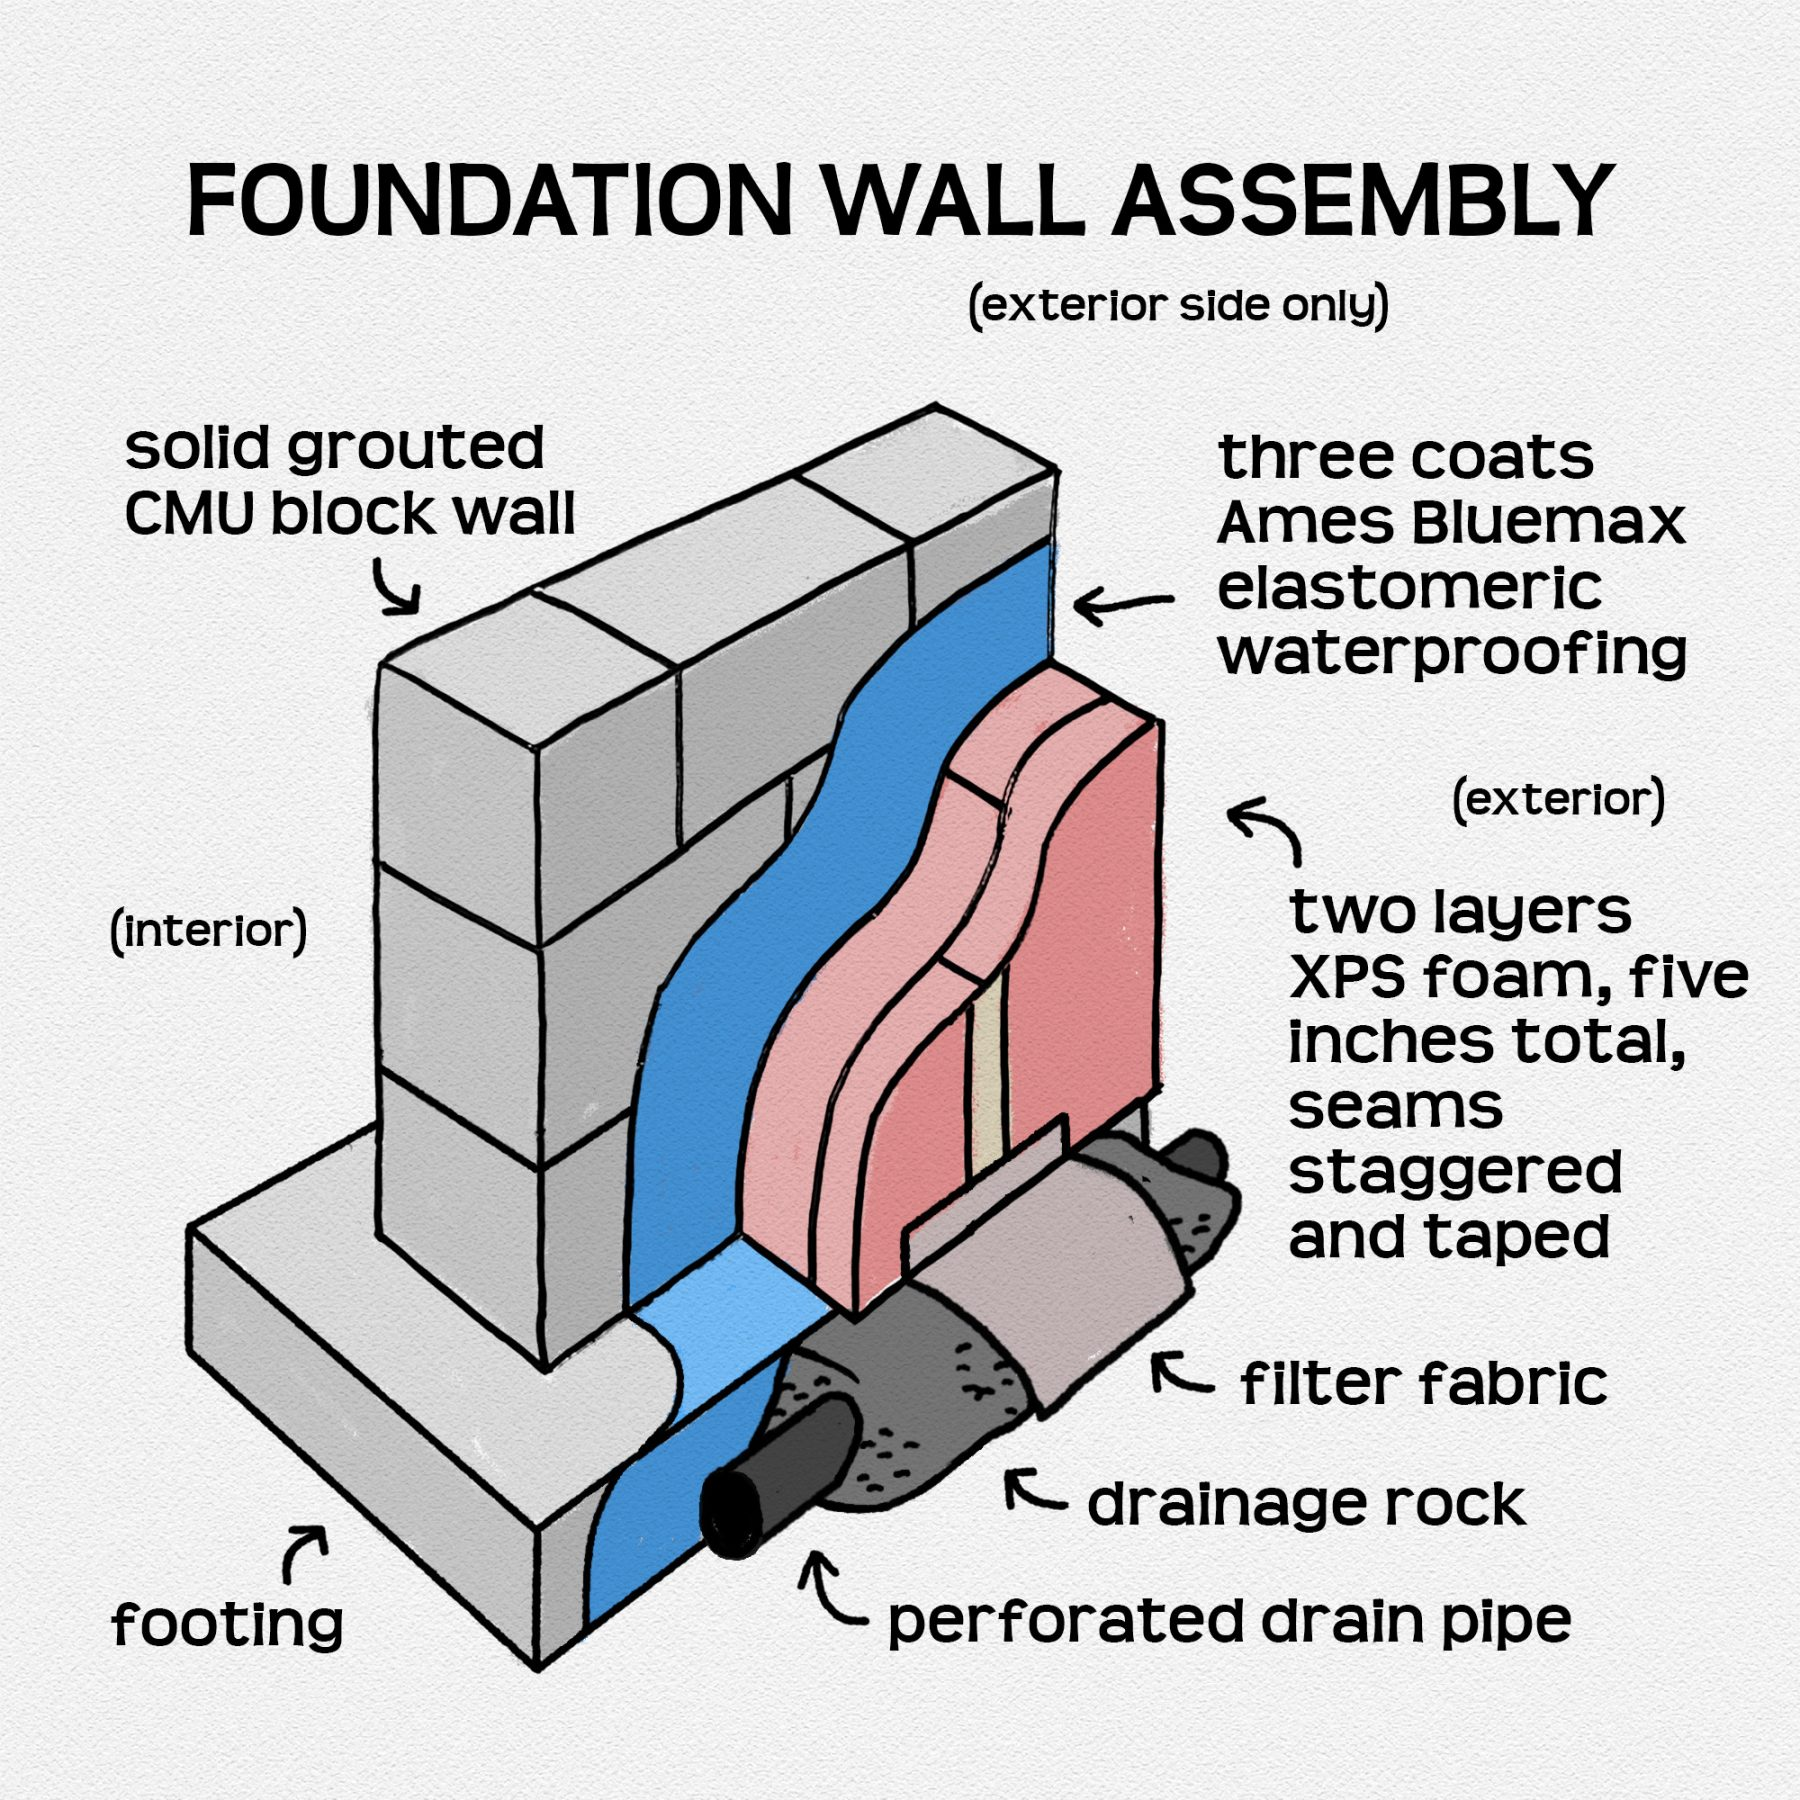 Foundation wall aseembly